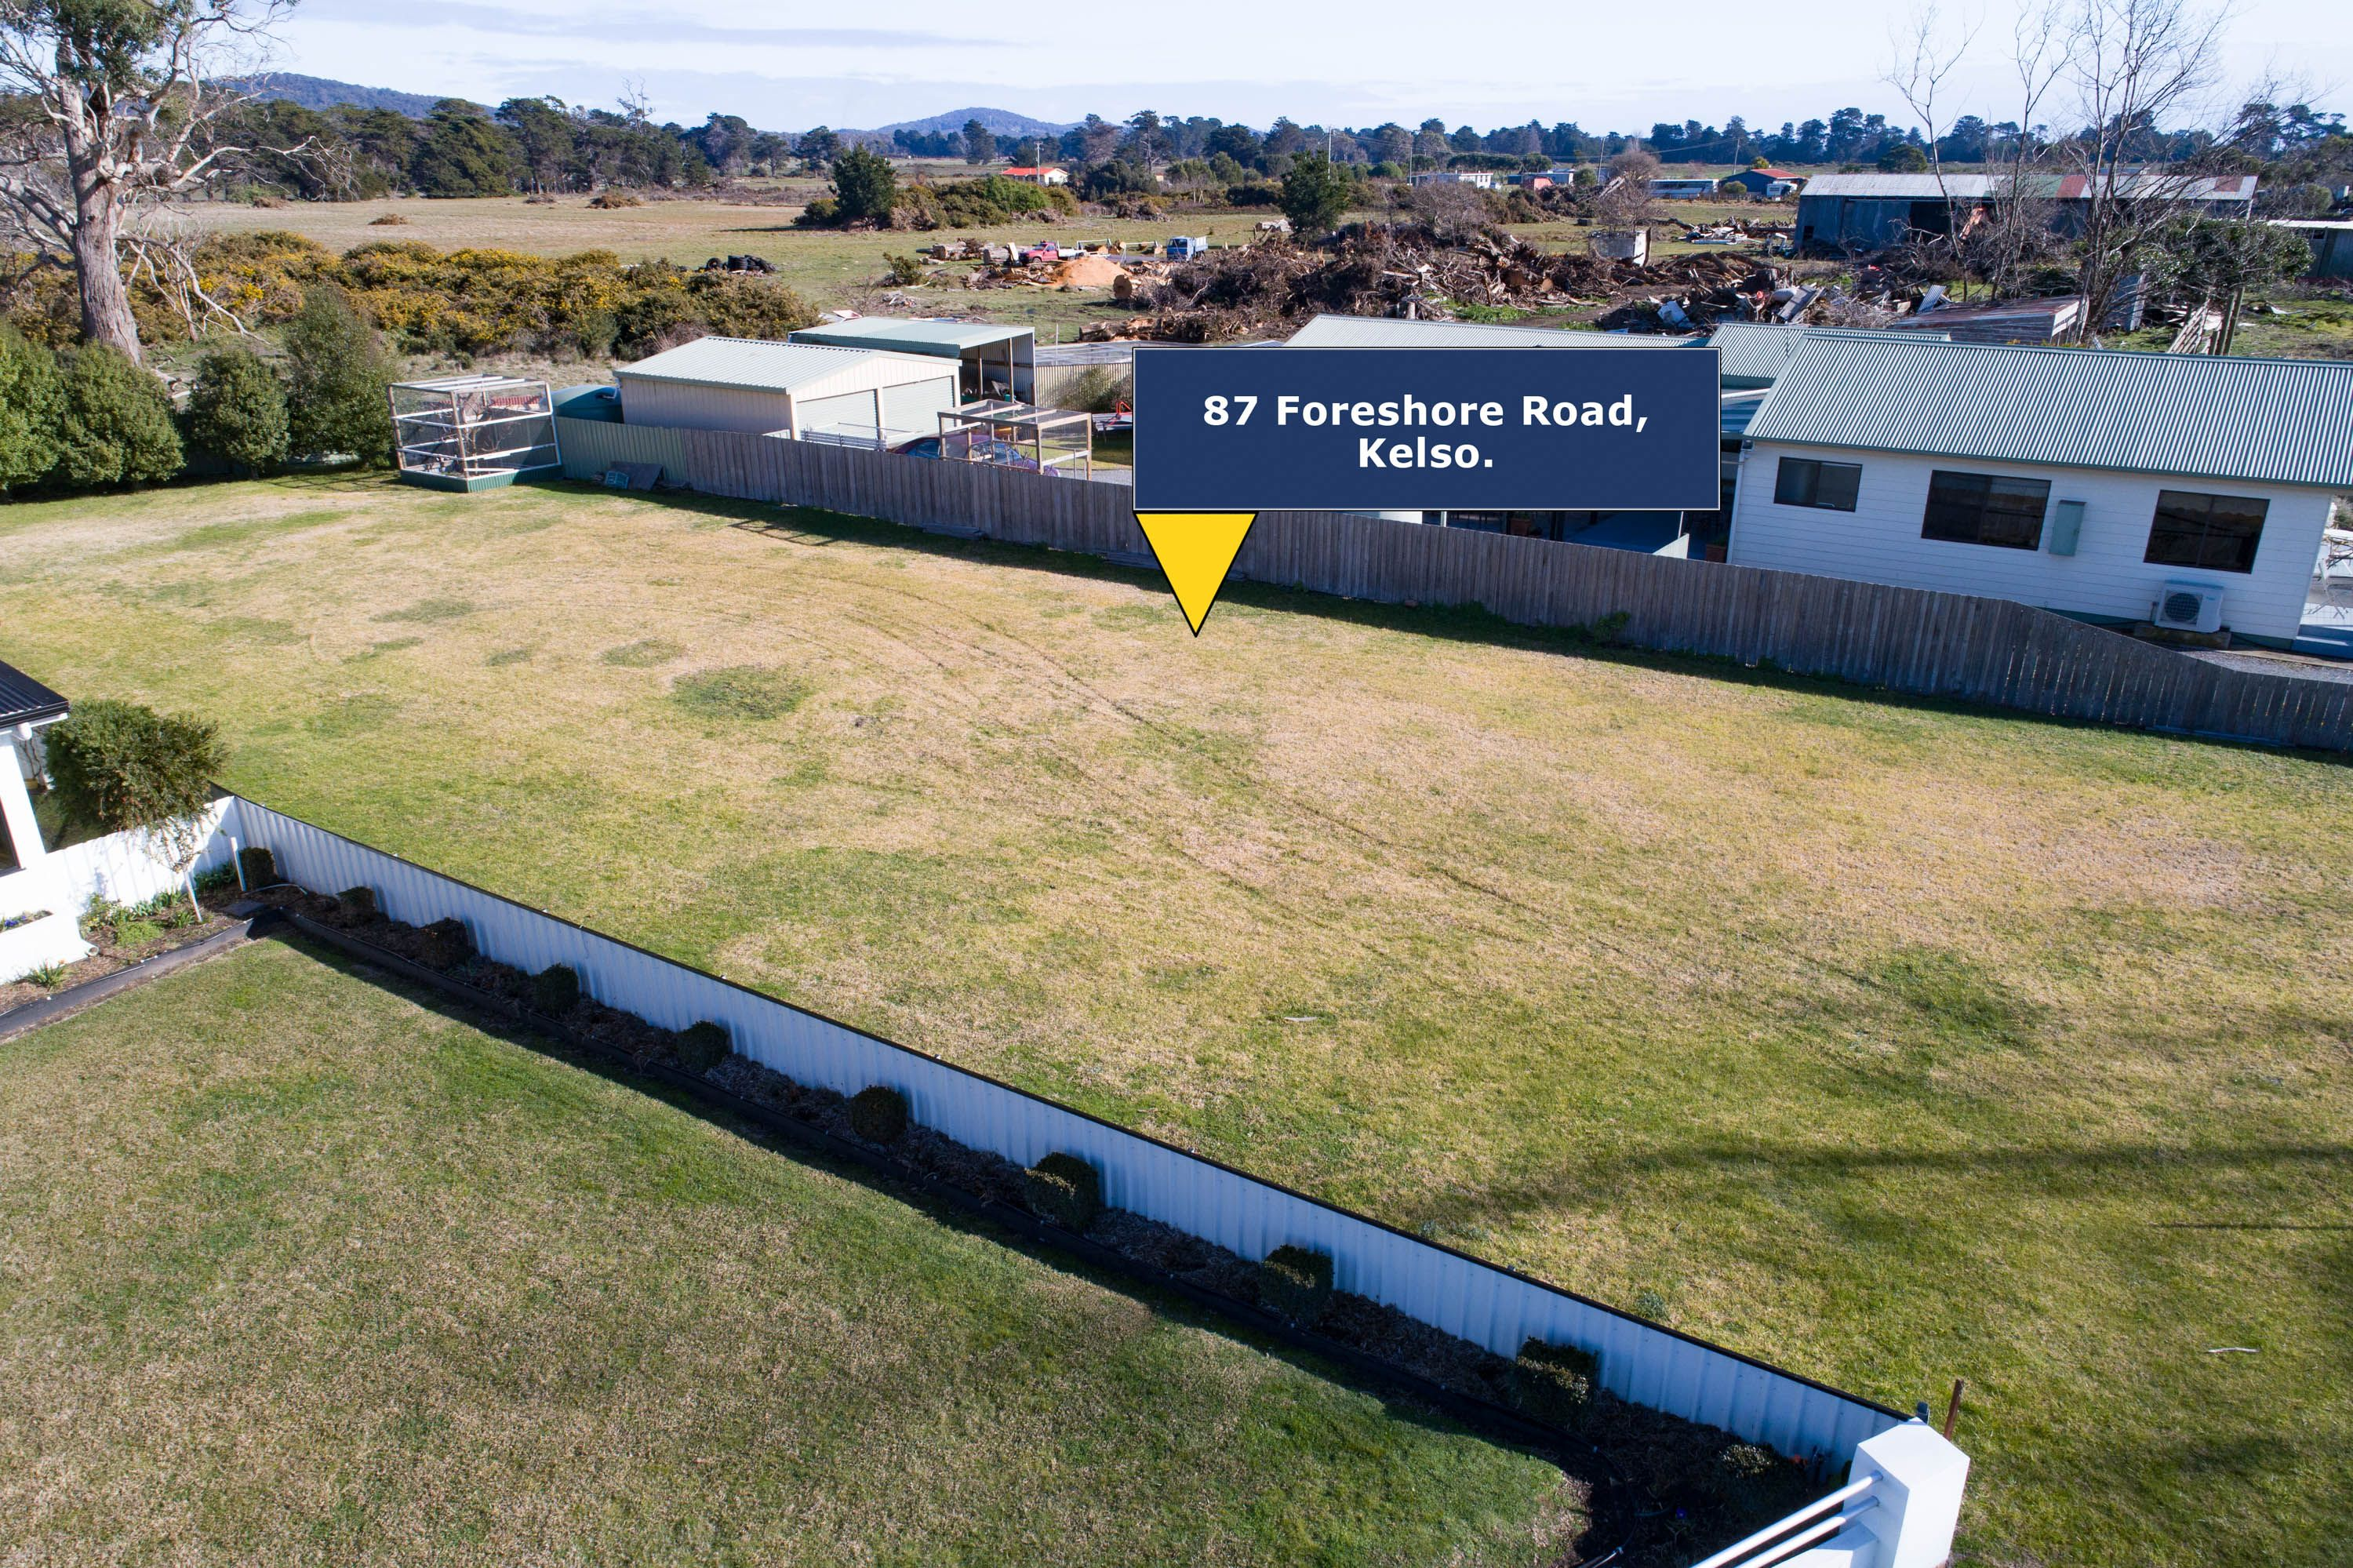 87 Foreshore Road, Kelso